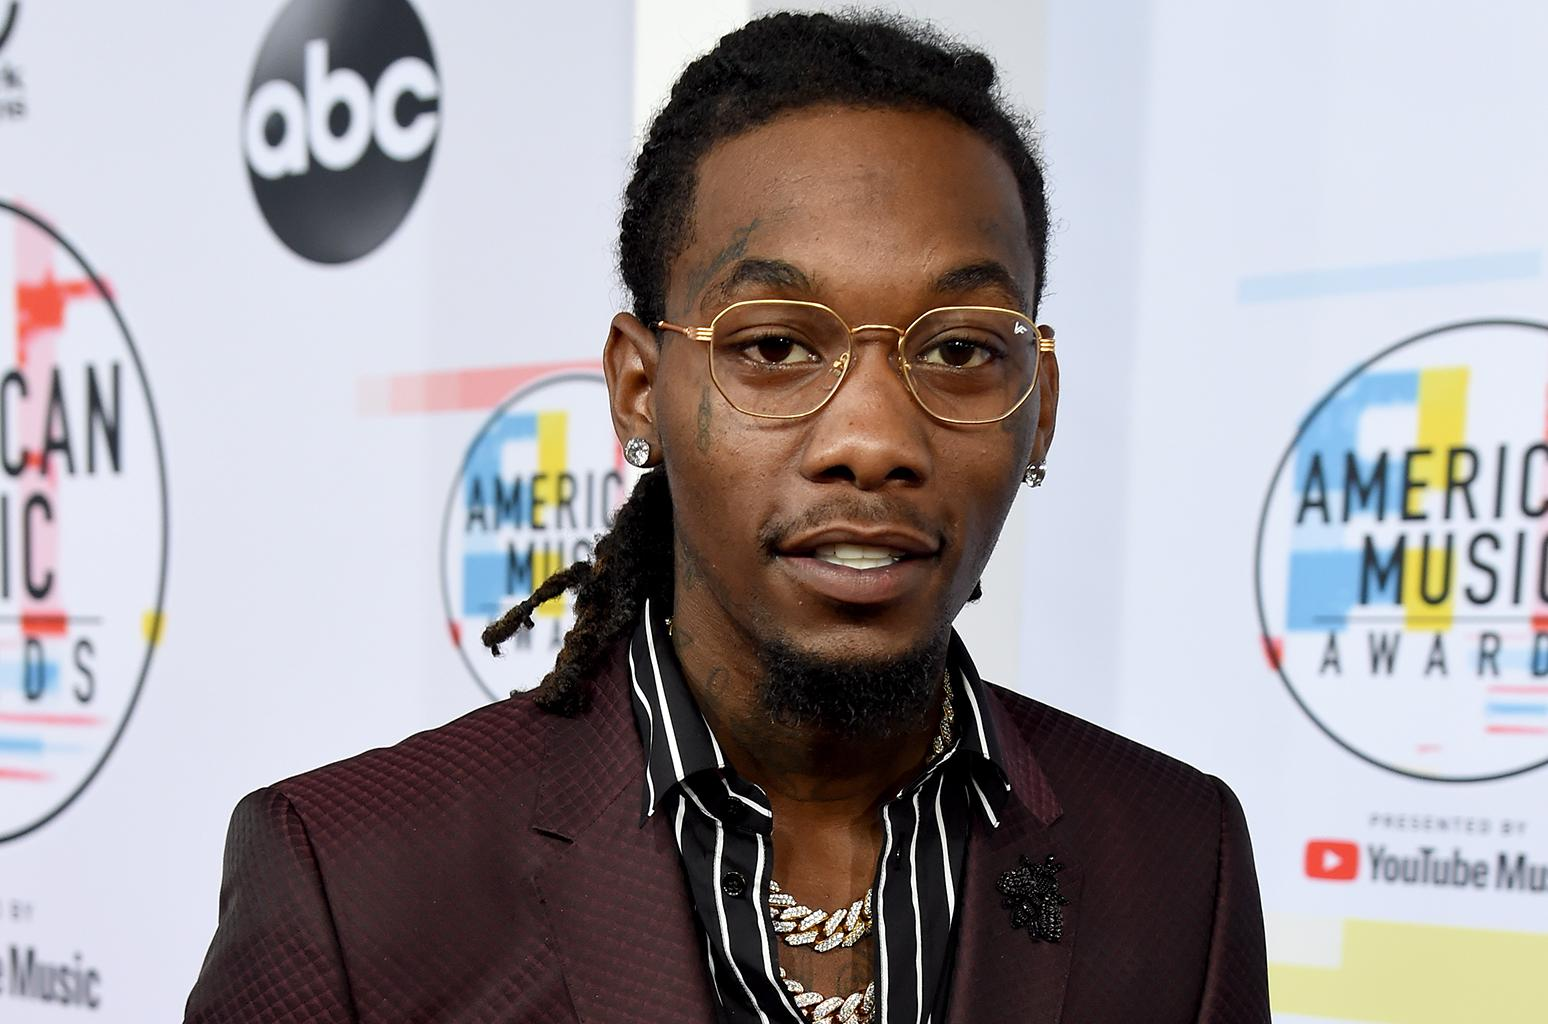 Offset Is Reportedly Safe After Scary Drive-By Shooting Happens At Recording Studio While He Was There